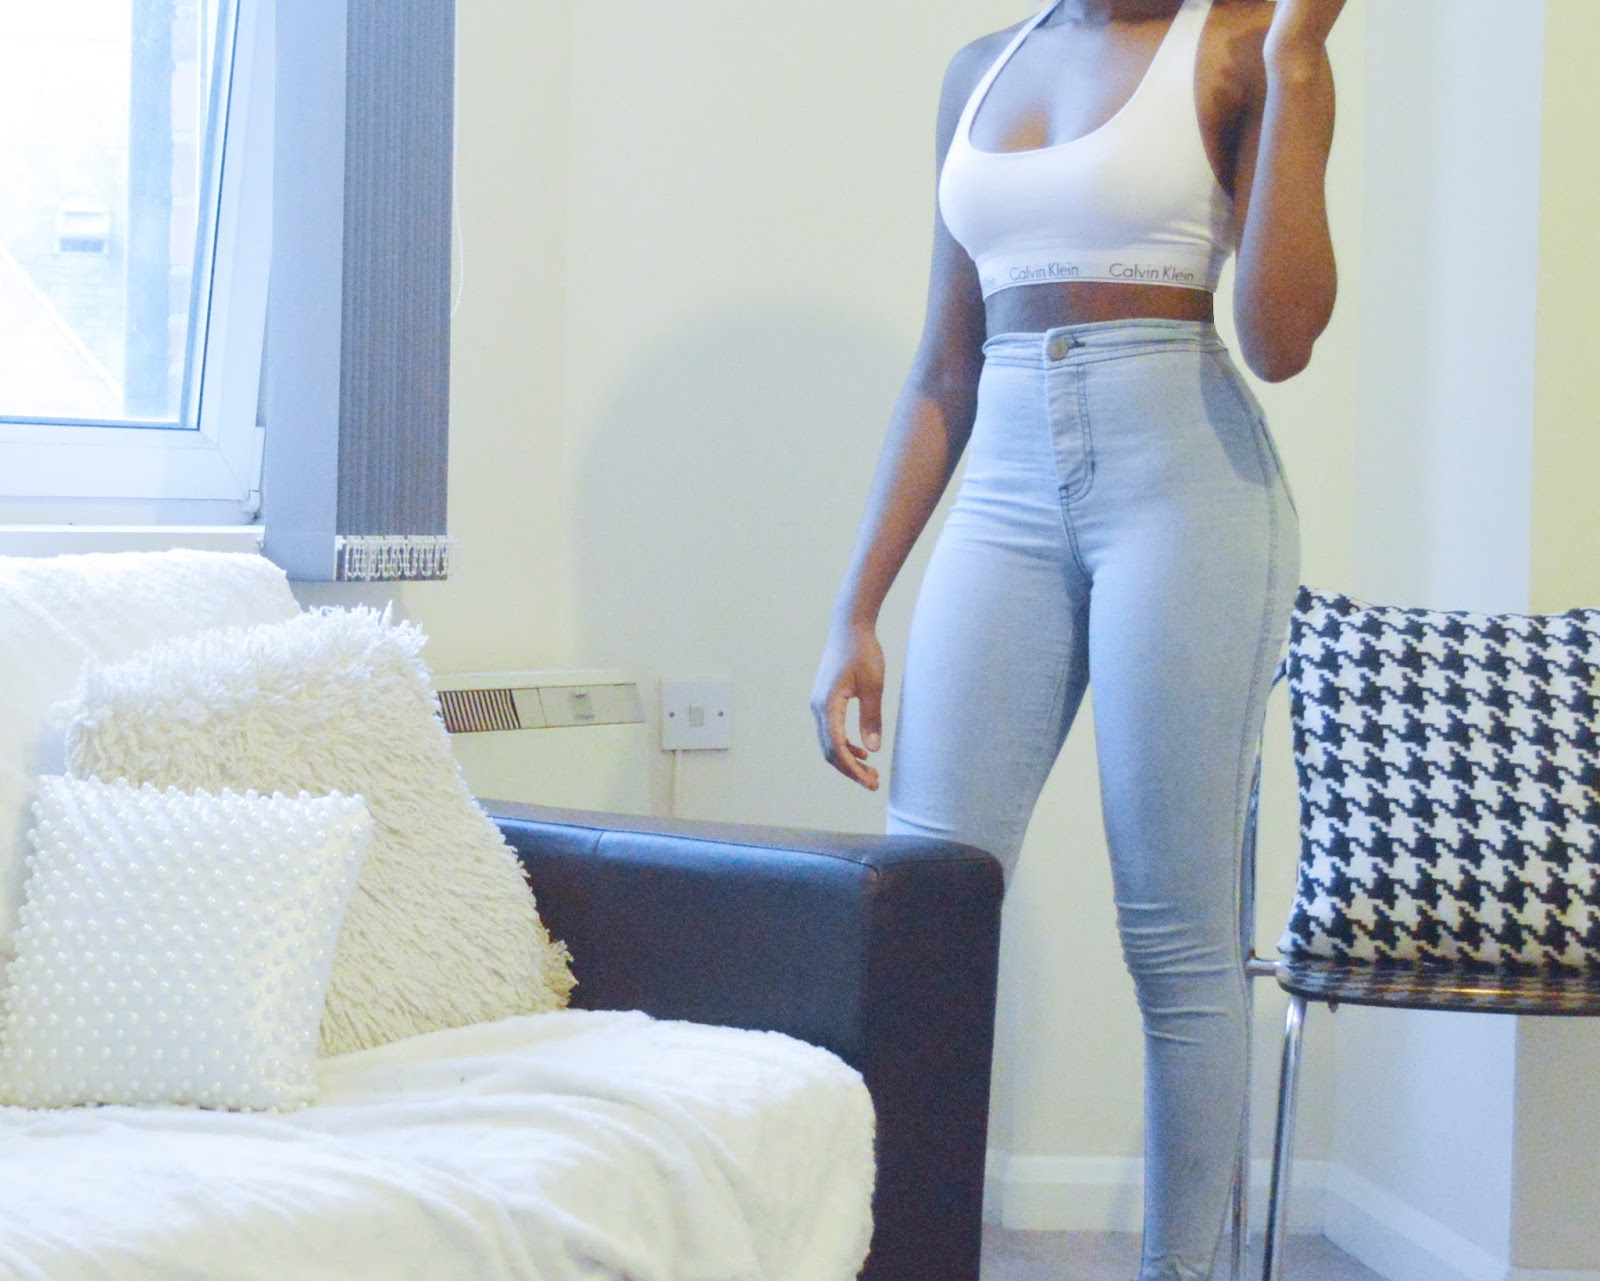 calvin klein,high waist,light blue jeans, calvin klein bra,athleisure,slimthick,african american,black girl,black girls,bob hair,weave,hourglass,small waist,body,athletic,fitspo,how to,how to wear,booty,round butt,tumblr,pinterest,wheretogetit